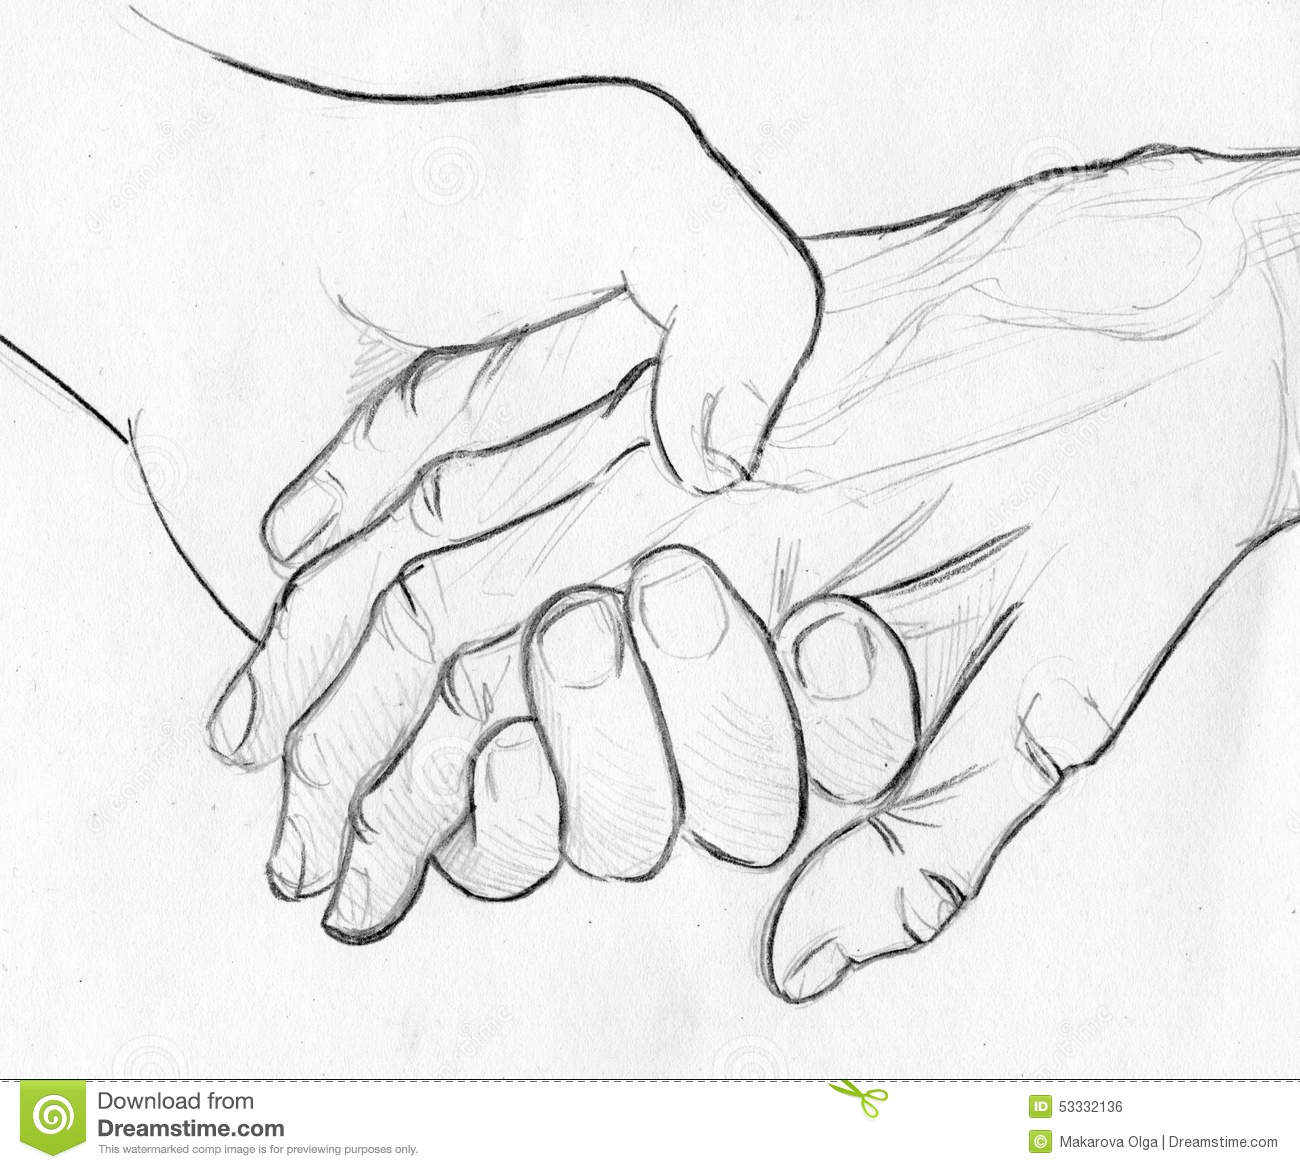 Holding Elderly Hand Pencil Sketch Stock Illustration